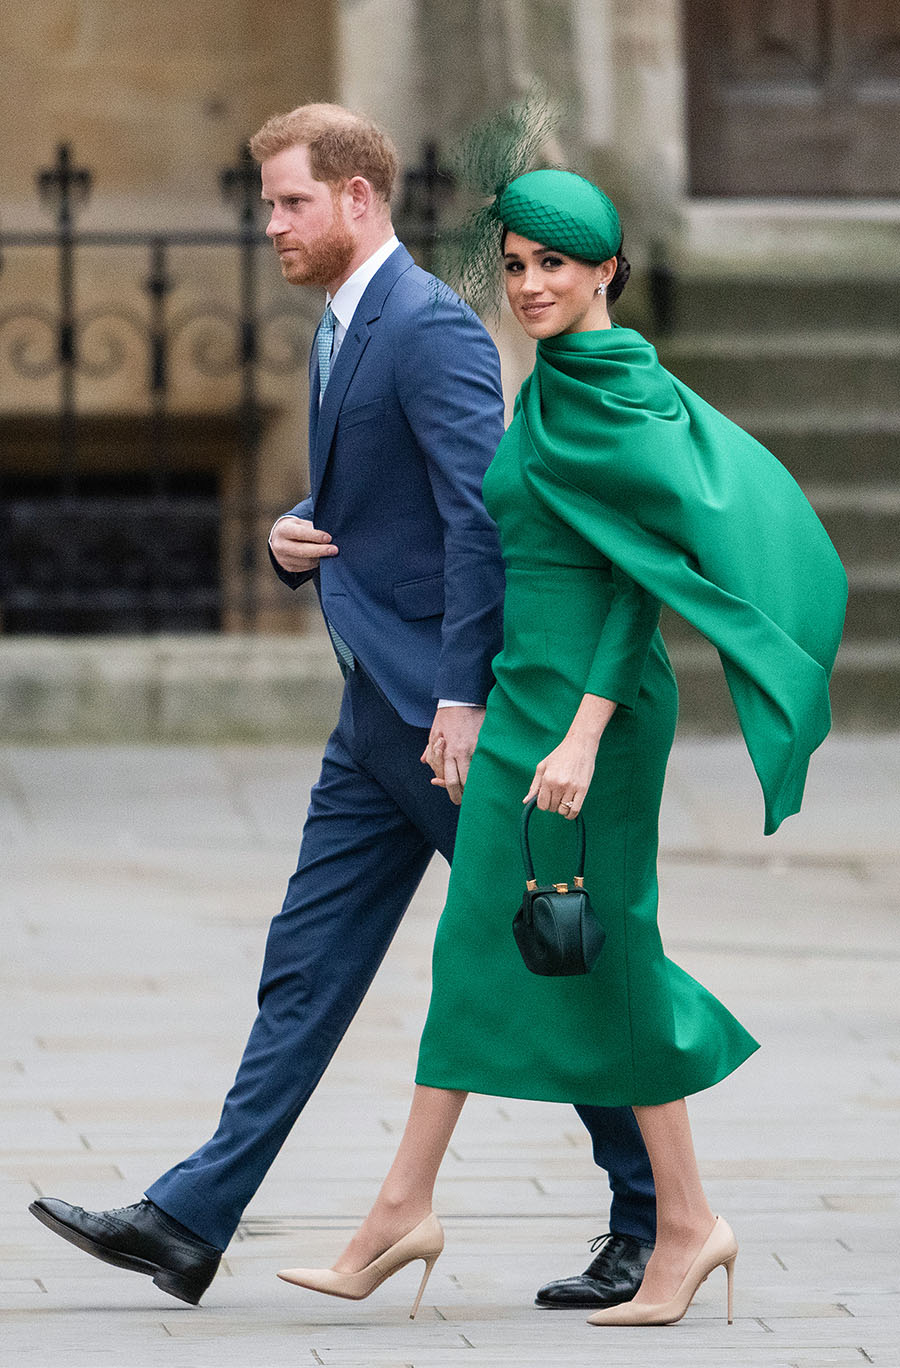 Meghan Markle and Prince Harry in a suit and a green dress walking into church